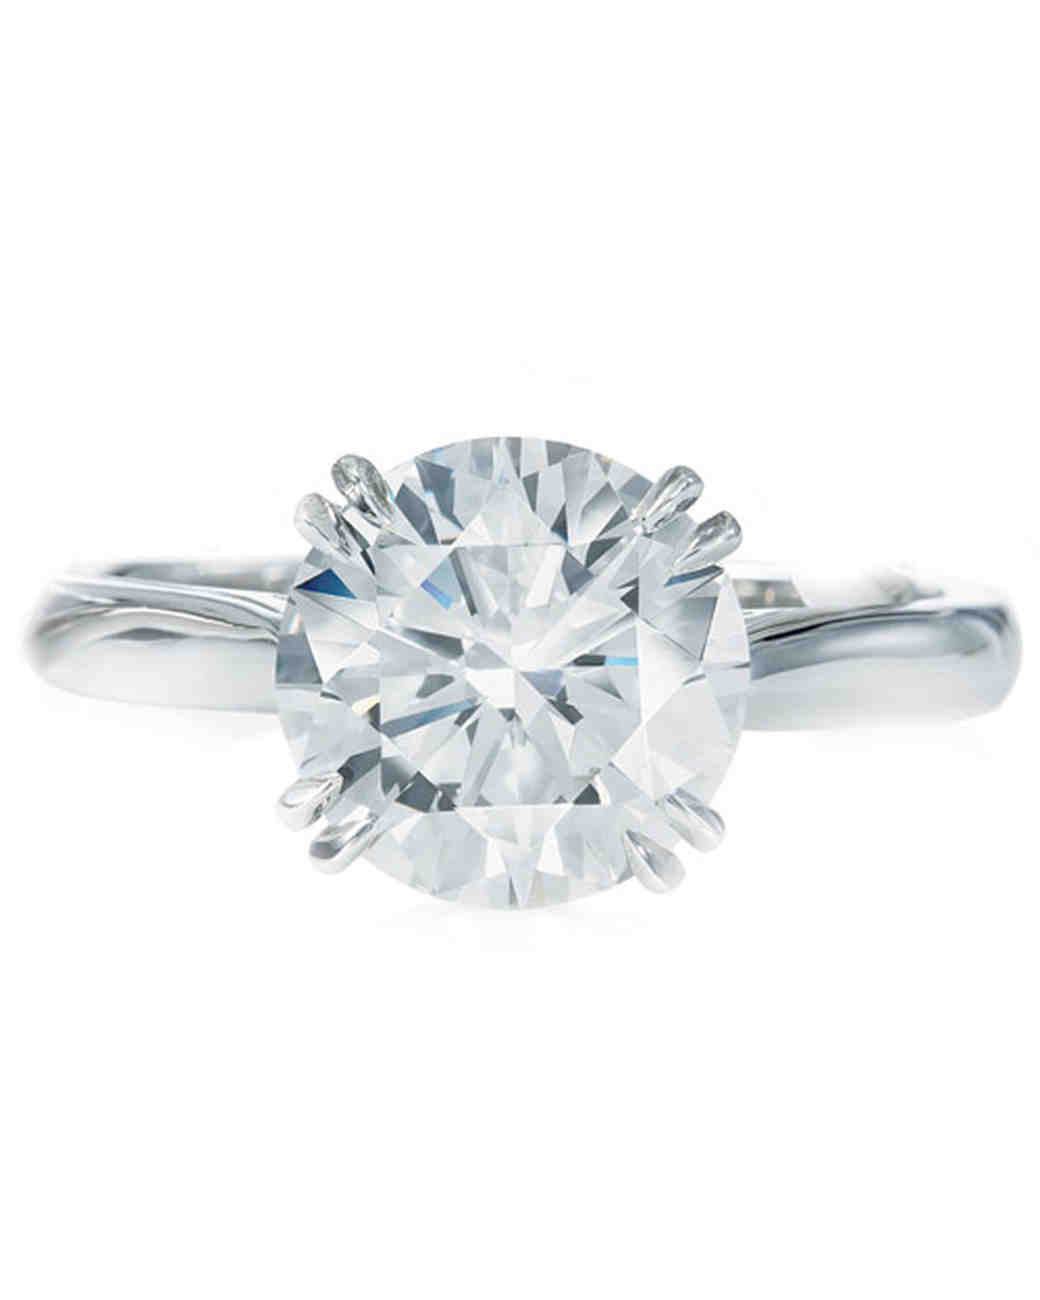 Round Solitaire Diamond Engagement Ring From Harry Winston